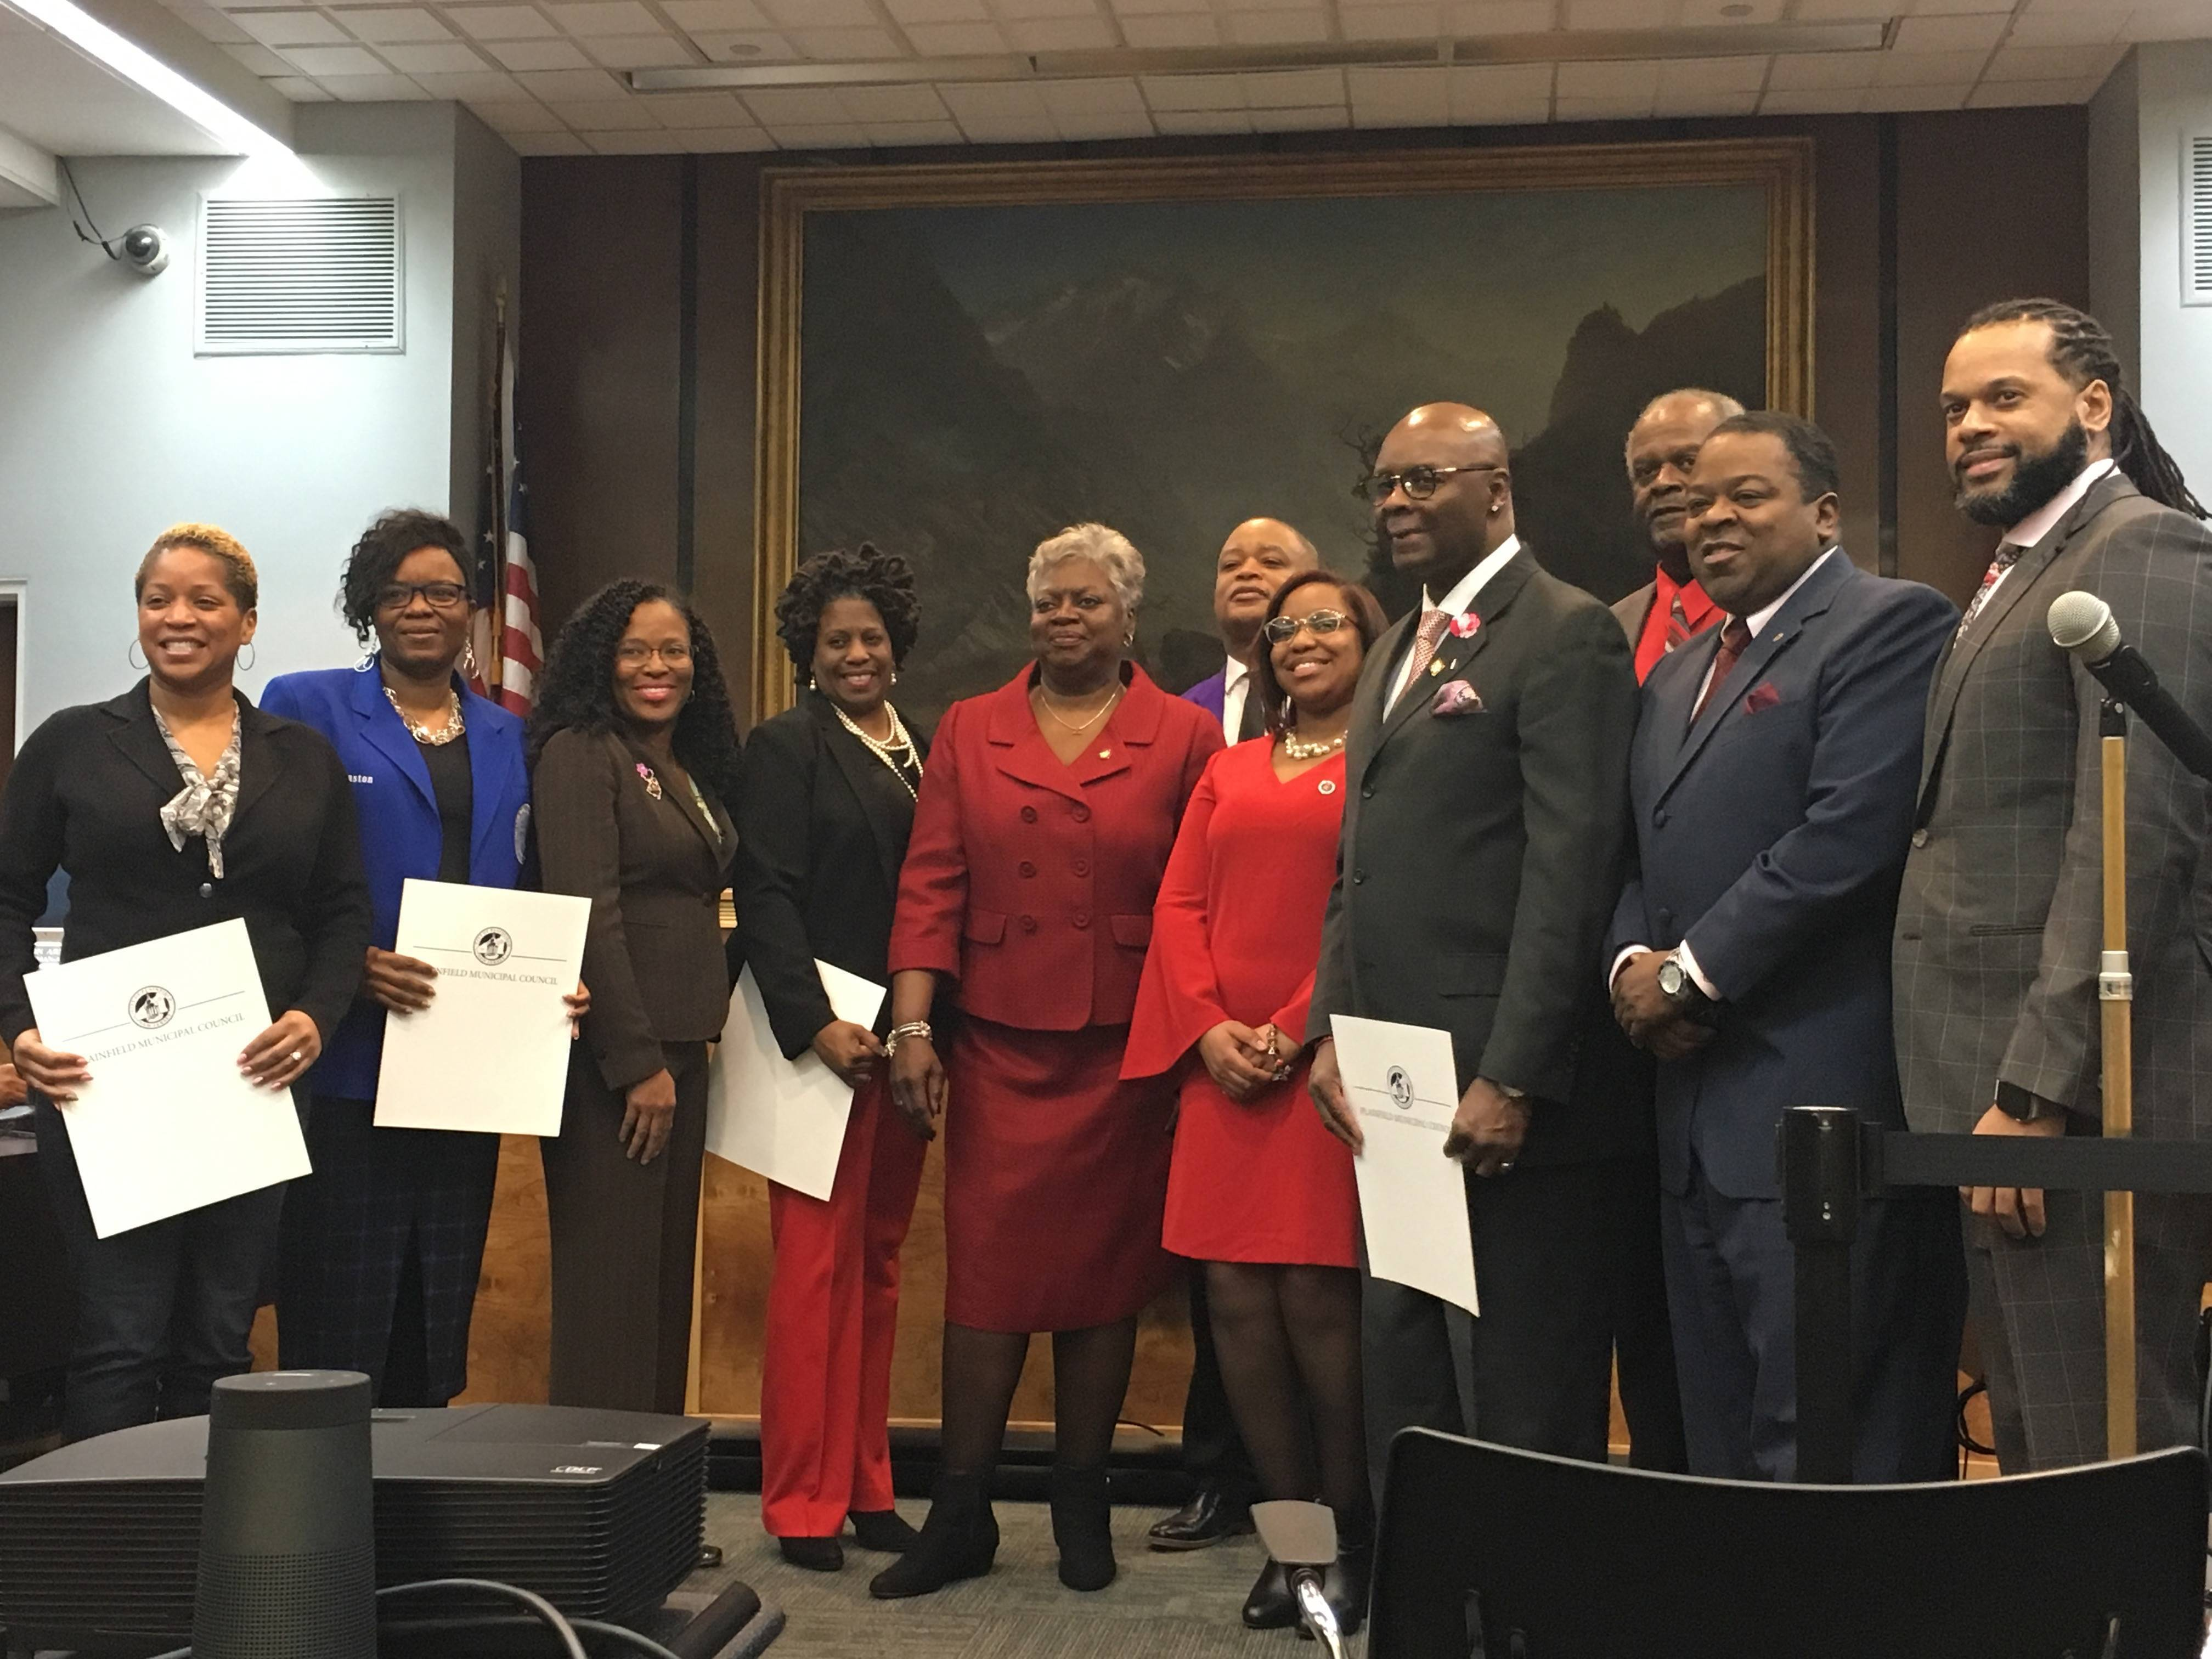 232cd5690ea Members of historically black fraternities and sororities are honored for  their contributions to the Plainfield community Members of historically  black ...